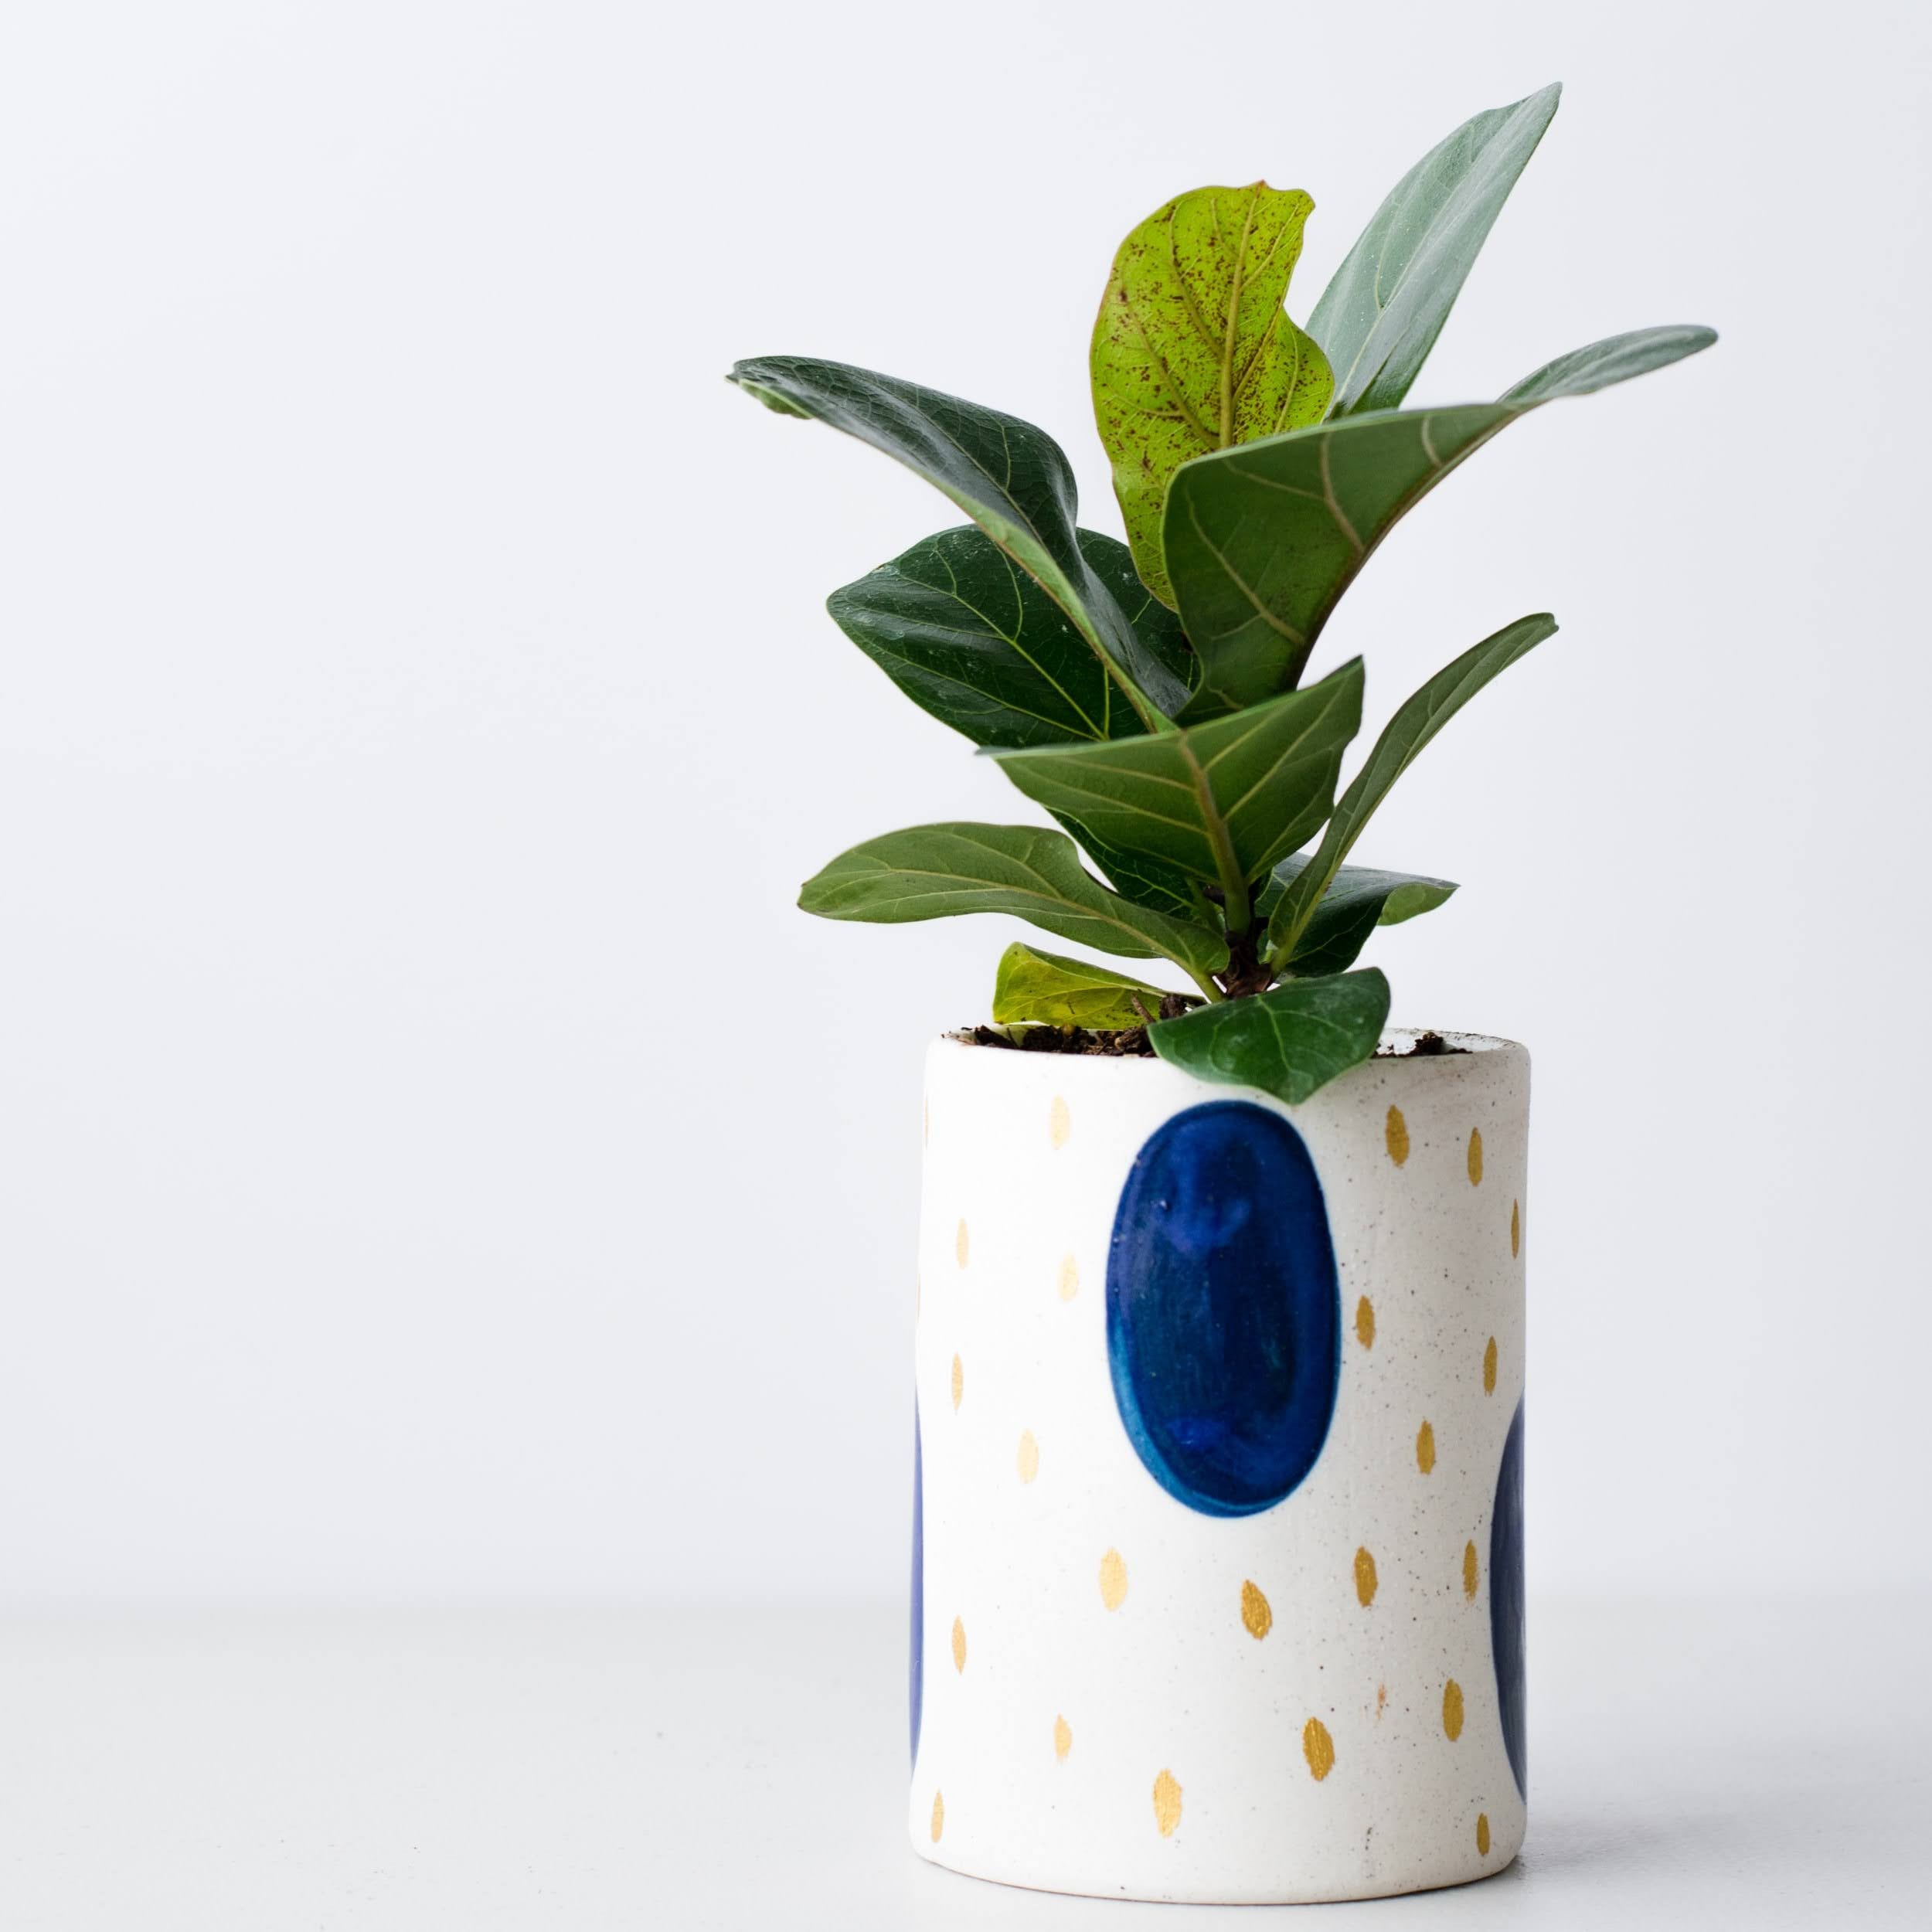 Mini Fiddle Leaf Fig | Photo by Kelsey Brown via Unsplash